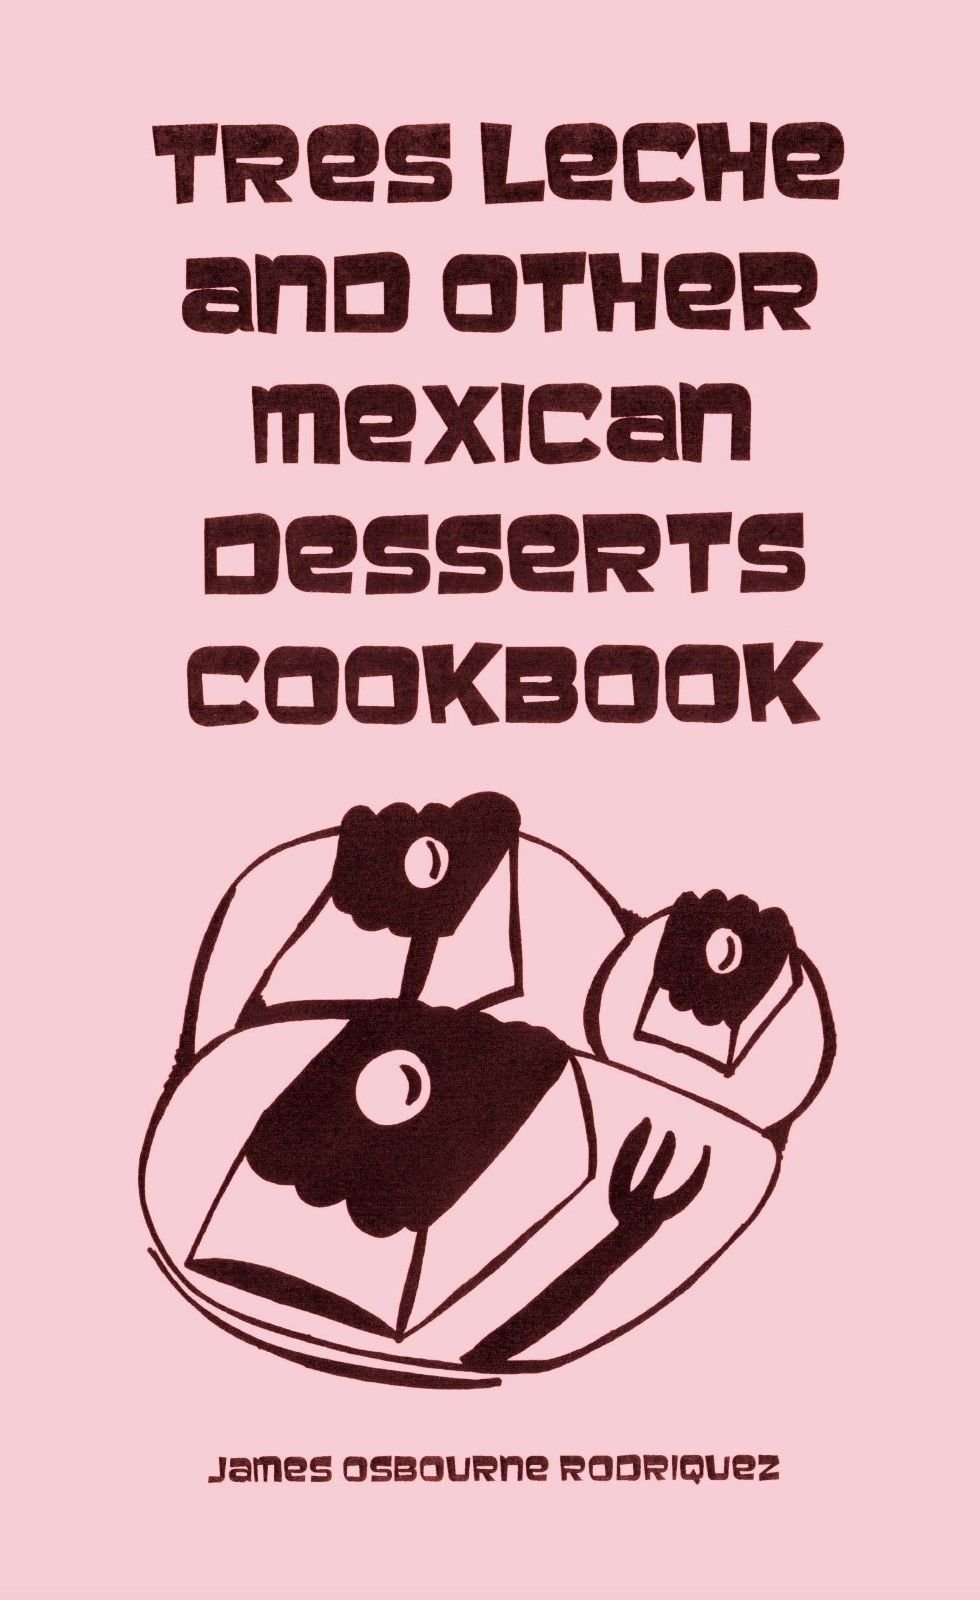 TRES LECHE and other MEXICAN DESSERTS COOKBOOK tres leches book dessert Staple Bound – 2014